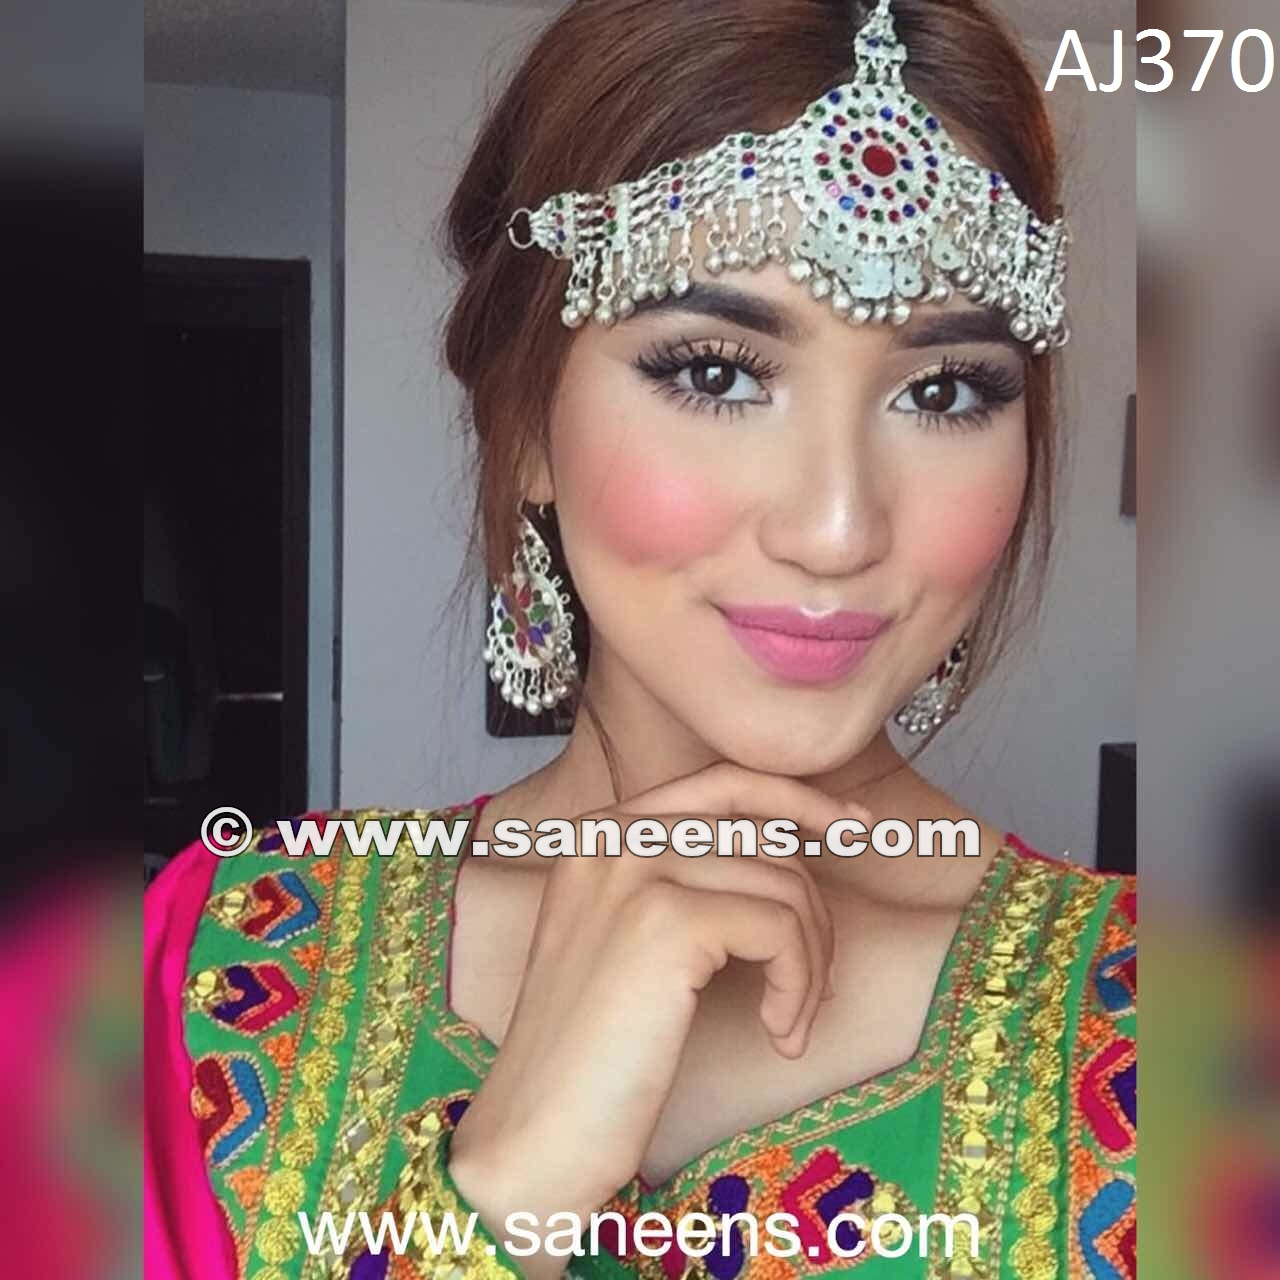 afghan jewelry, afghan wedding jewellery online, kuchi jewelry, ethnic jewelry